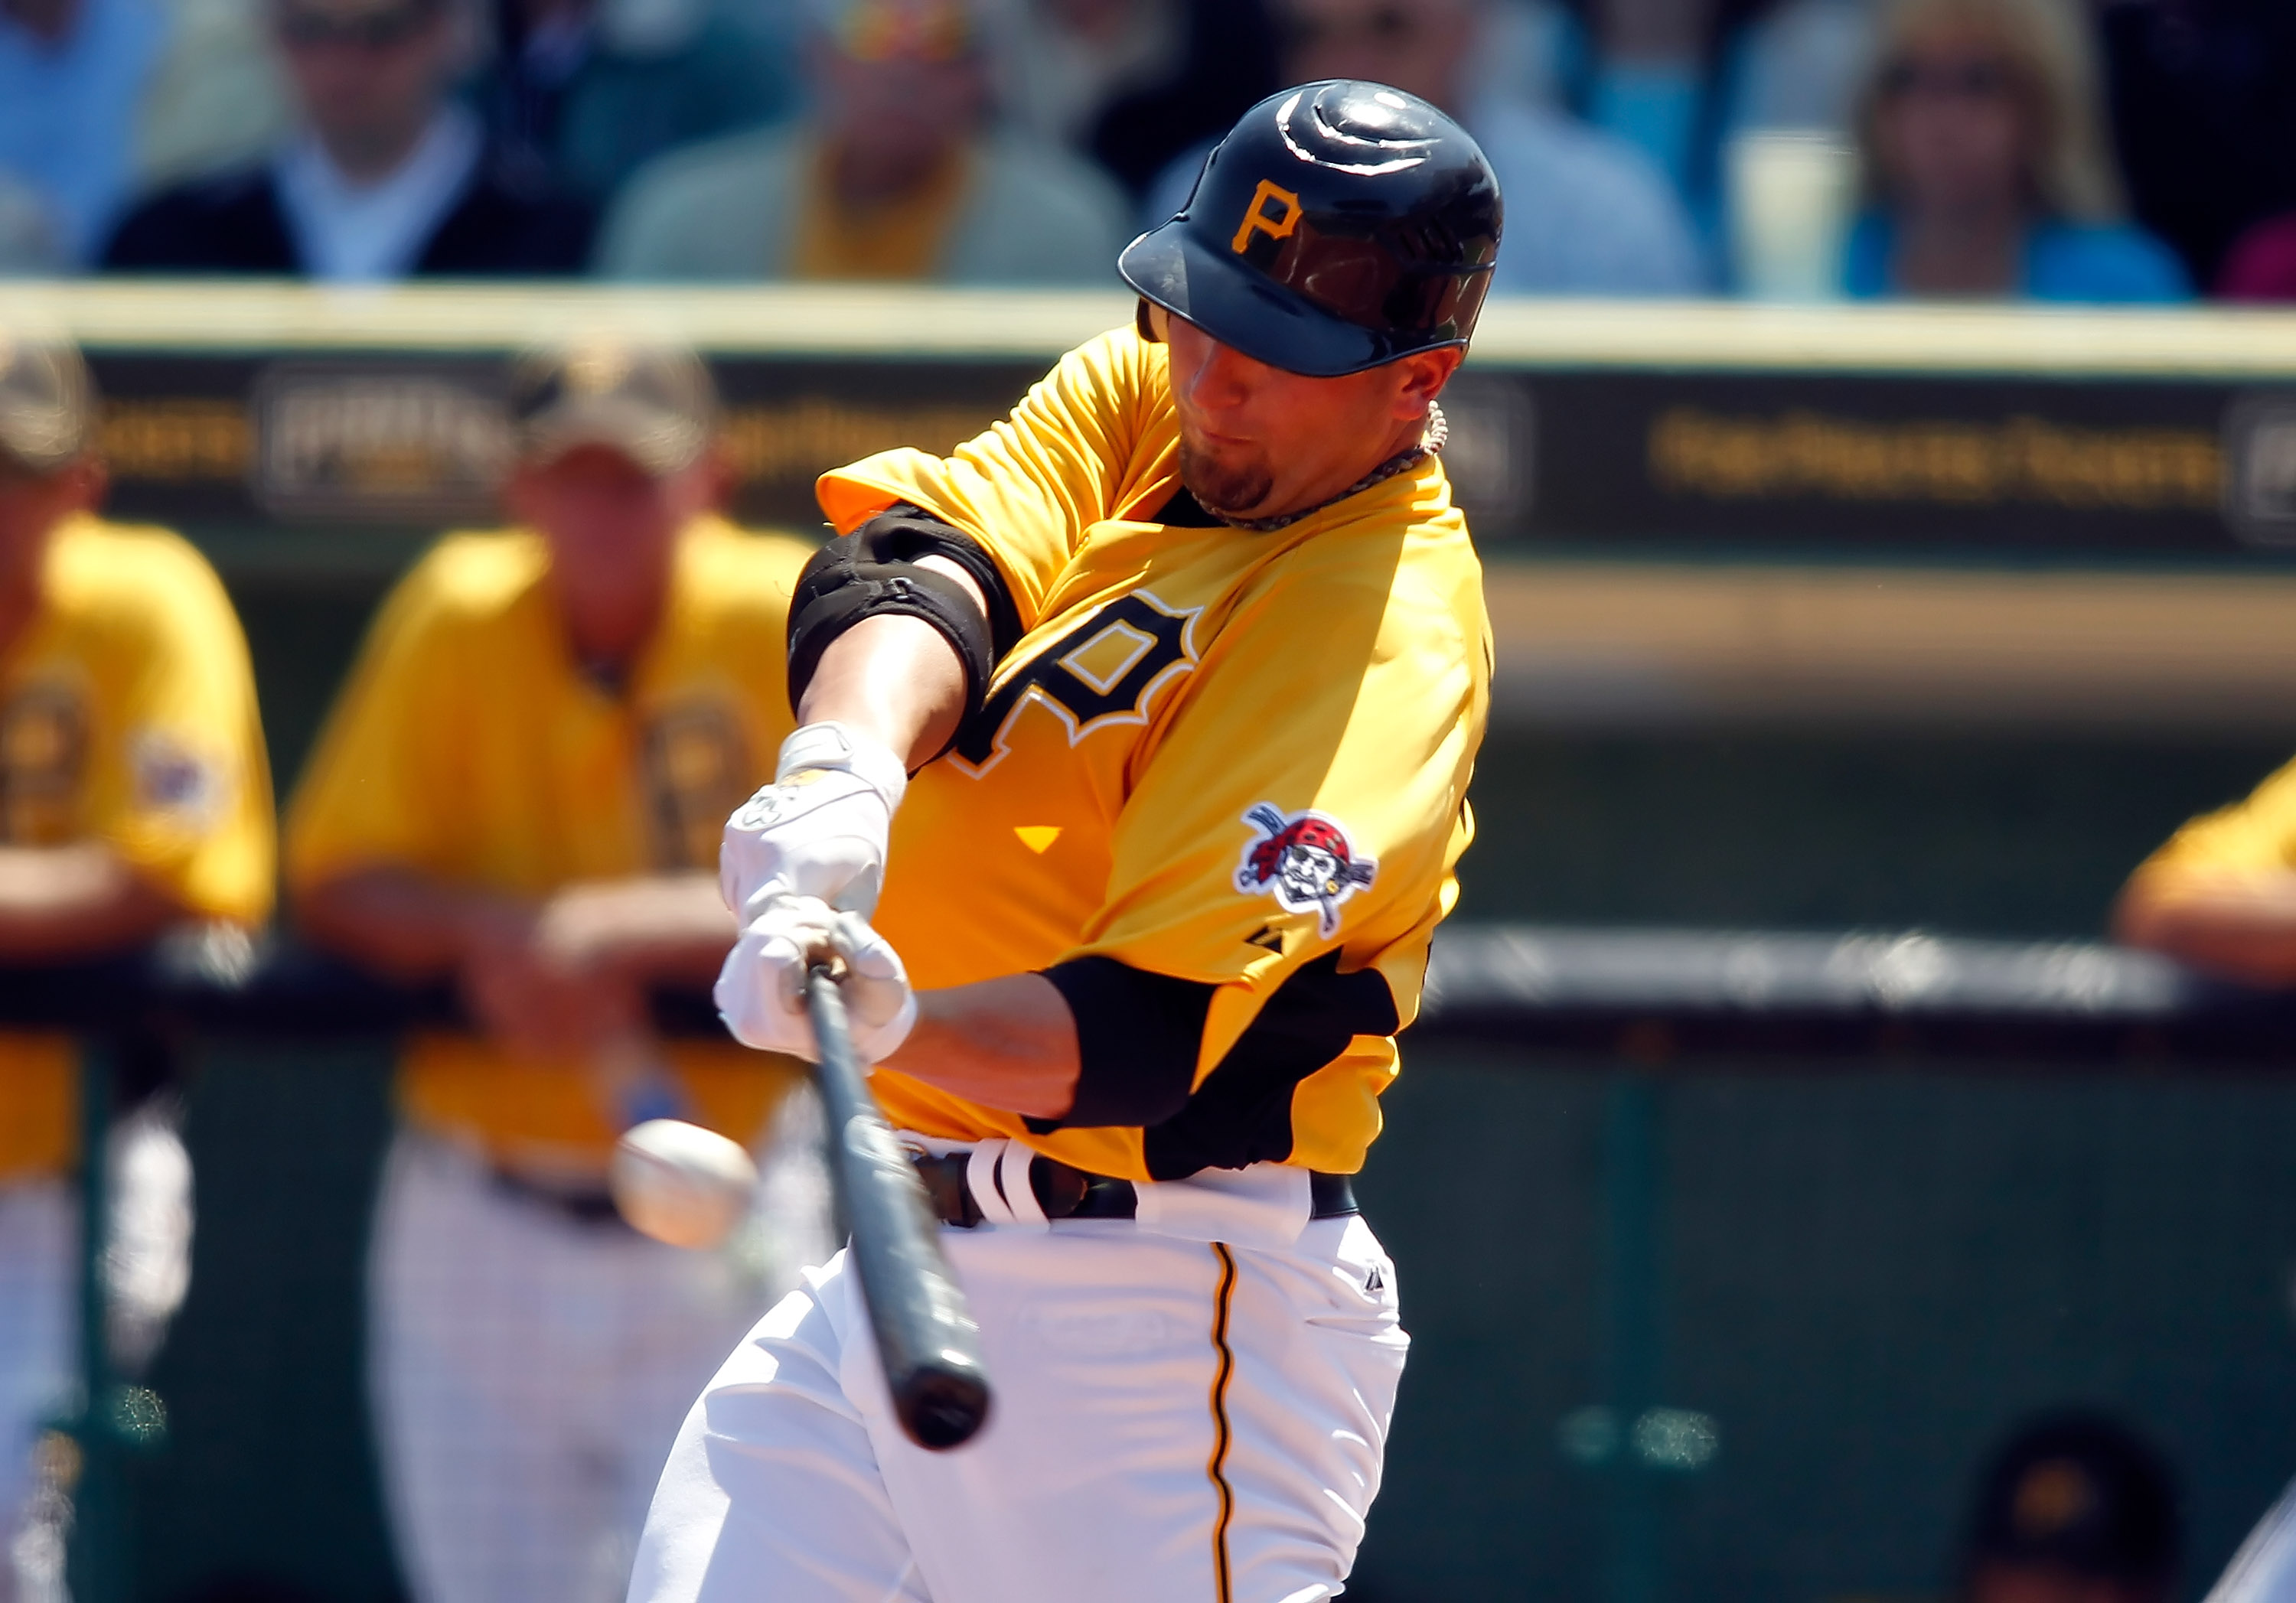 BRADENTON, FL - MARCH 13:  Pitcher Brad Lincoln #32 of the Pittsburgh Pirates gets a base hit against the Boston Red Sox during a Grapefruit League Spring Training Game at McKechnie Field on March 13, 2011 in Bradenton, Florida.  (Photo by J. Meric/Getty